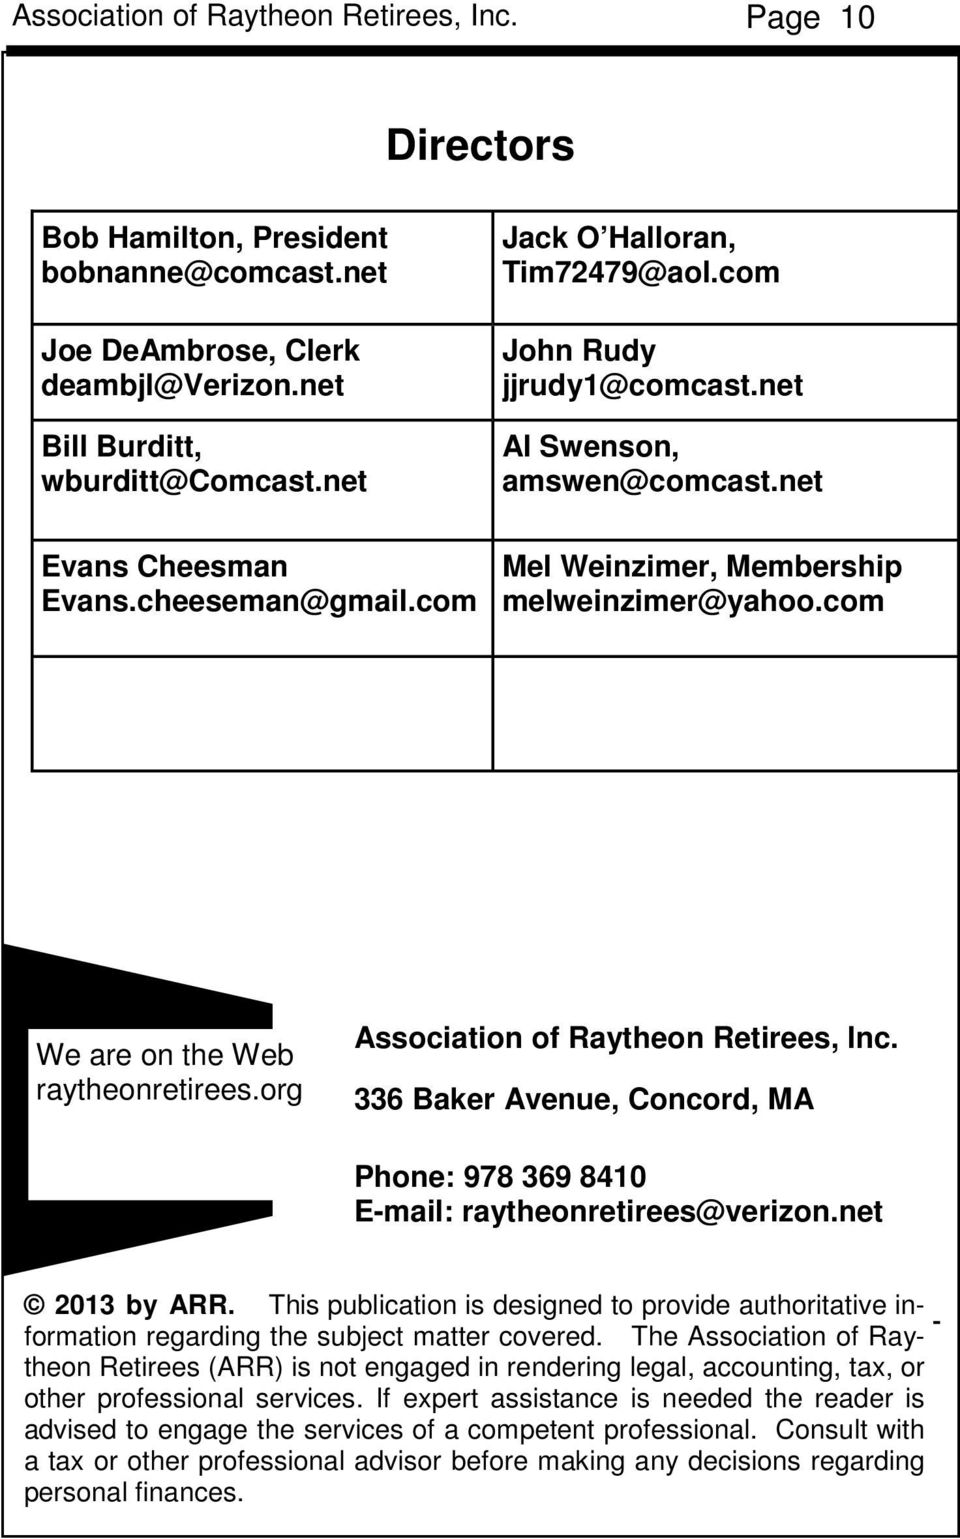 org Association of Raytheon Retirees, Inc. 336 Baker Avenue, Concord, MA Phone: 978 369 8410 E-mail: raytheonretirees@verizon.net 2013 by ARR.